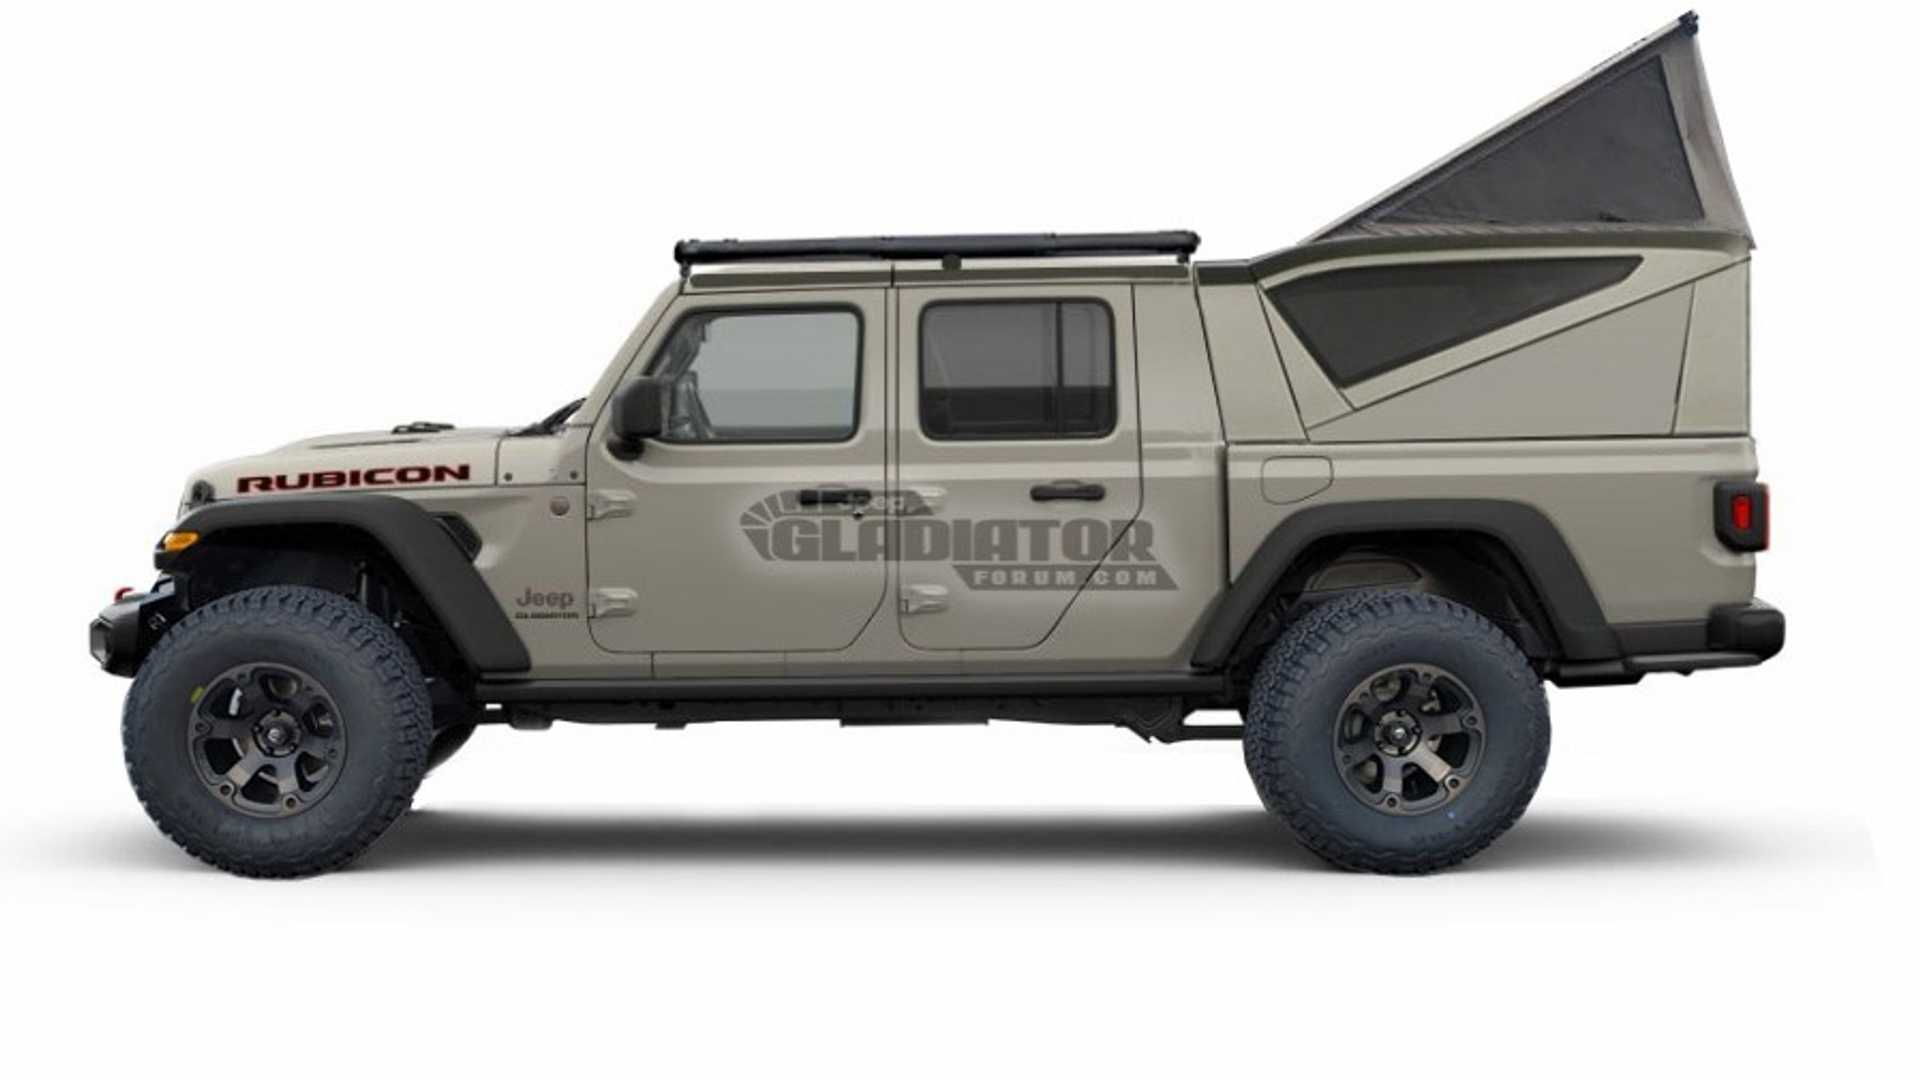 2020 Jeep Gladiator rendered with bed toppers | Motor1.com ...